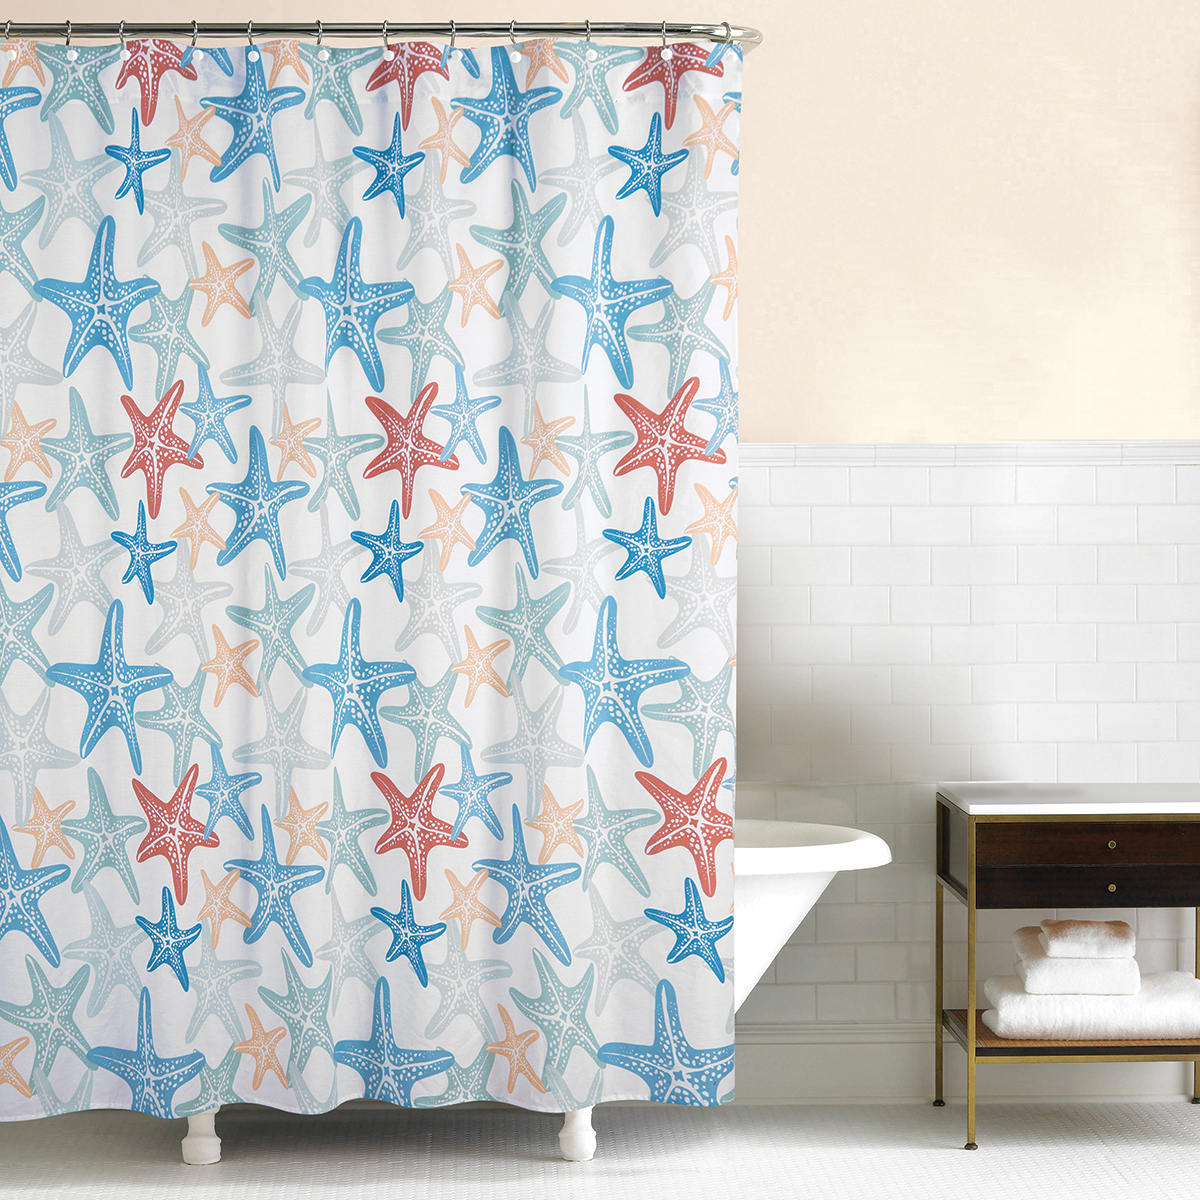 C&F Home_Coastal_Bedding_Shower Curtains.jpg